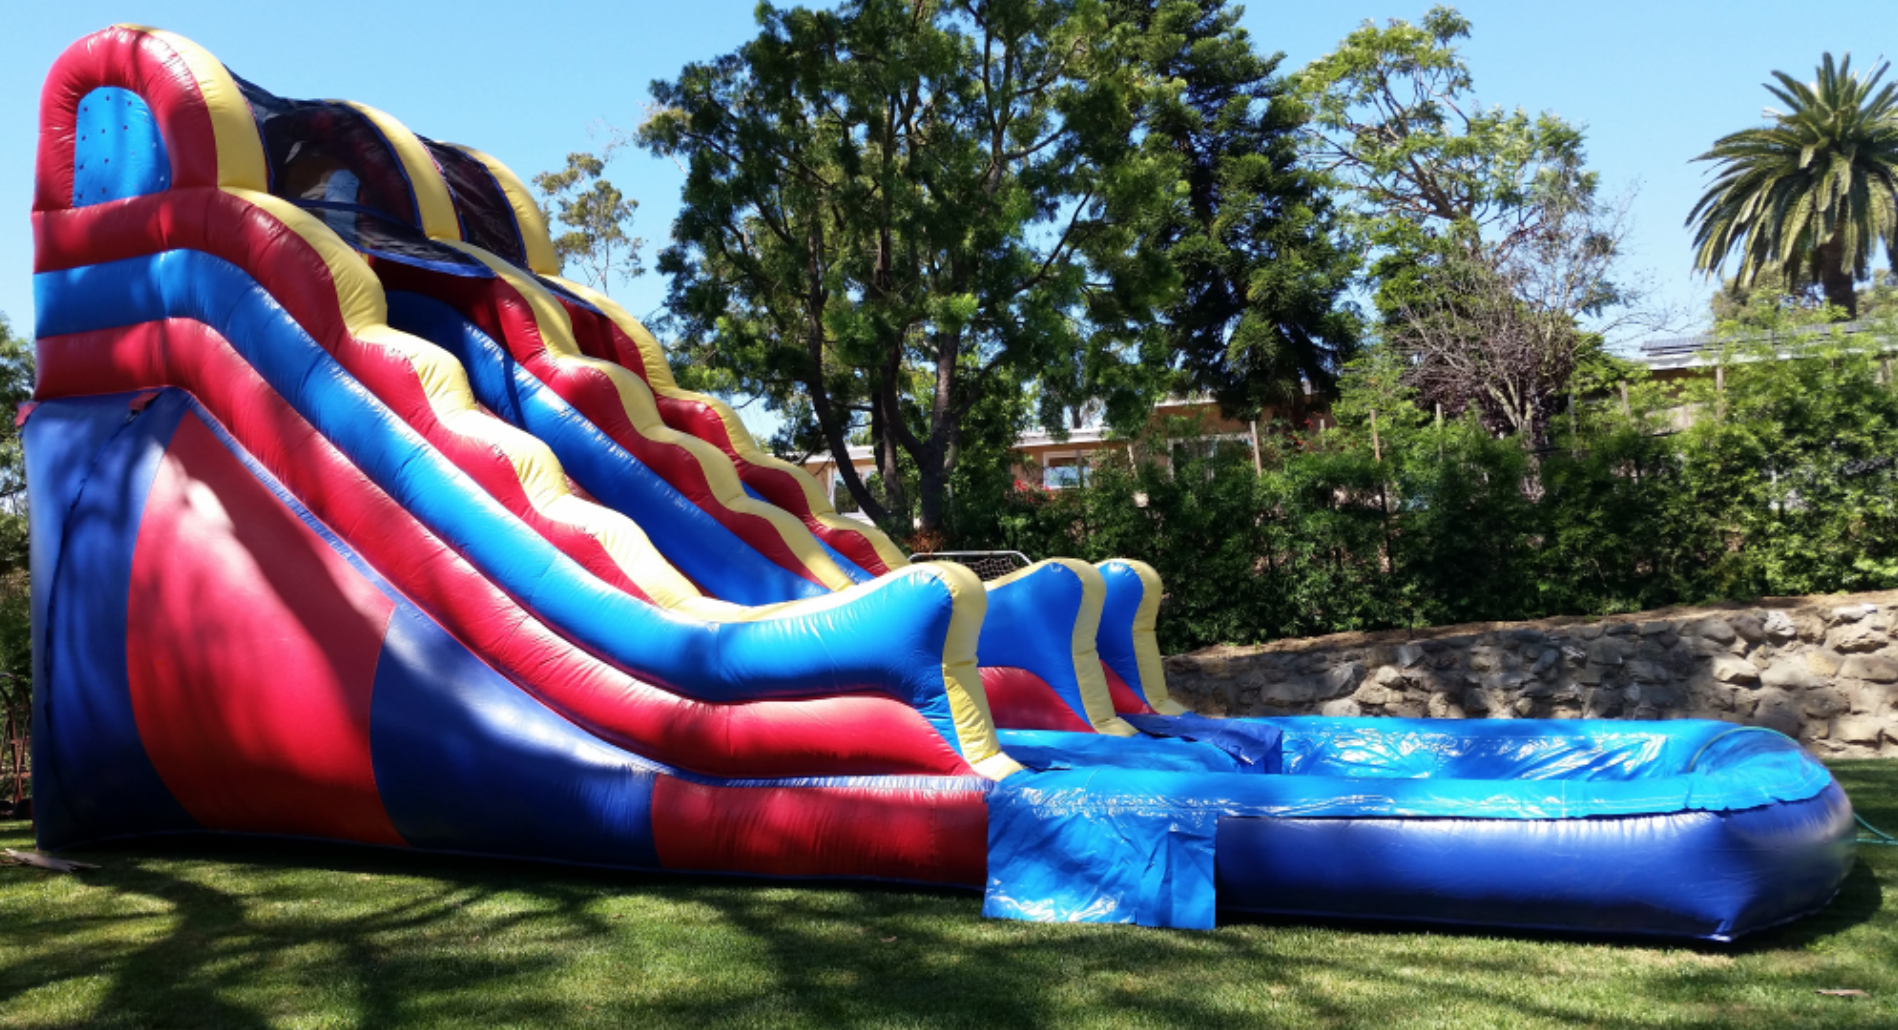 16'x30' (4.8x9.1 meter) inflatable waterslide/pool. Now that's what I'm talking about.